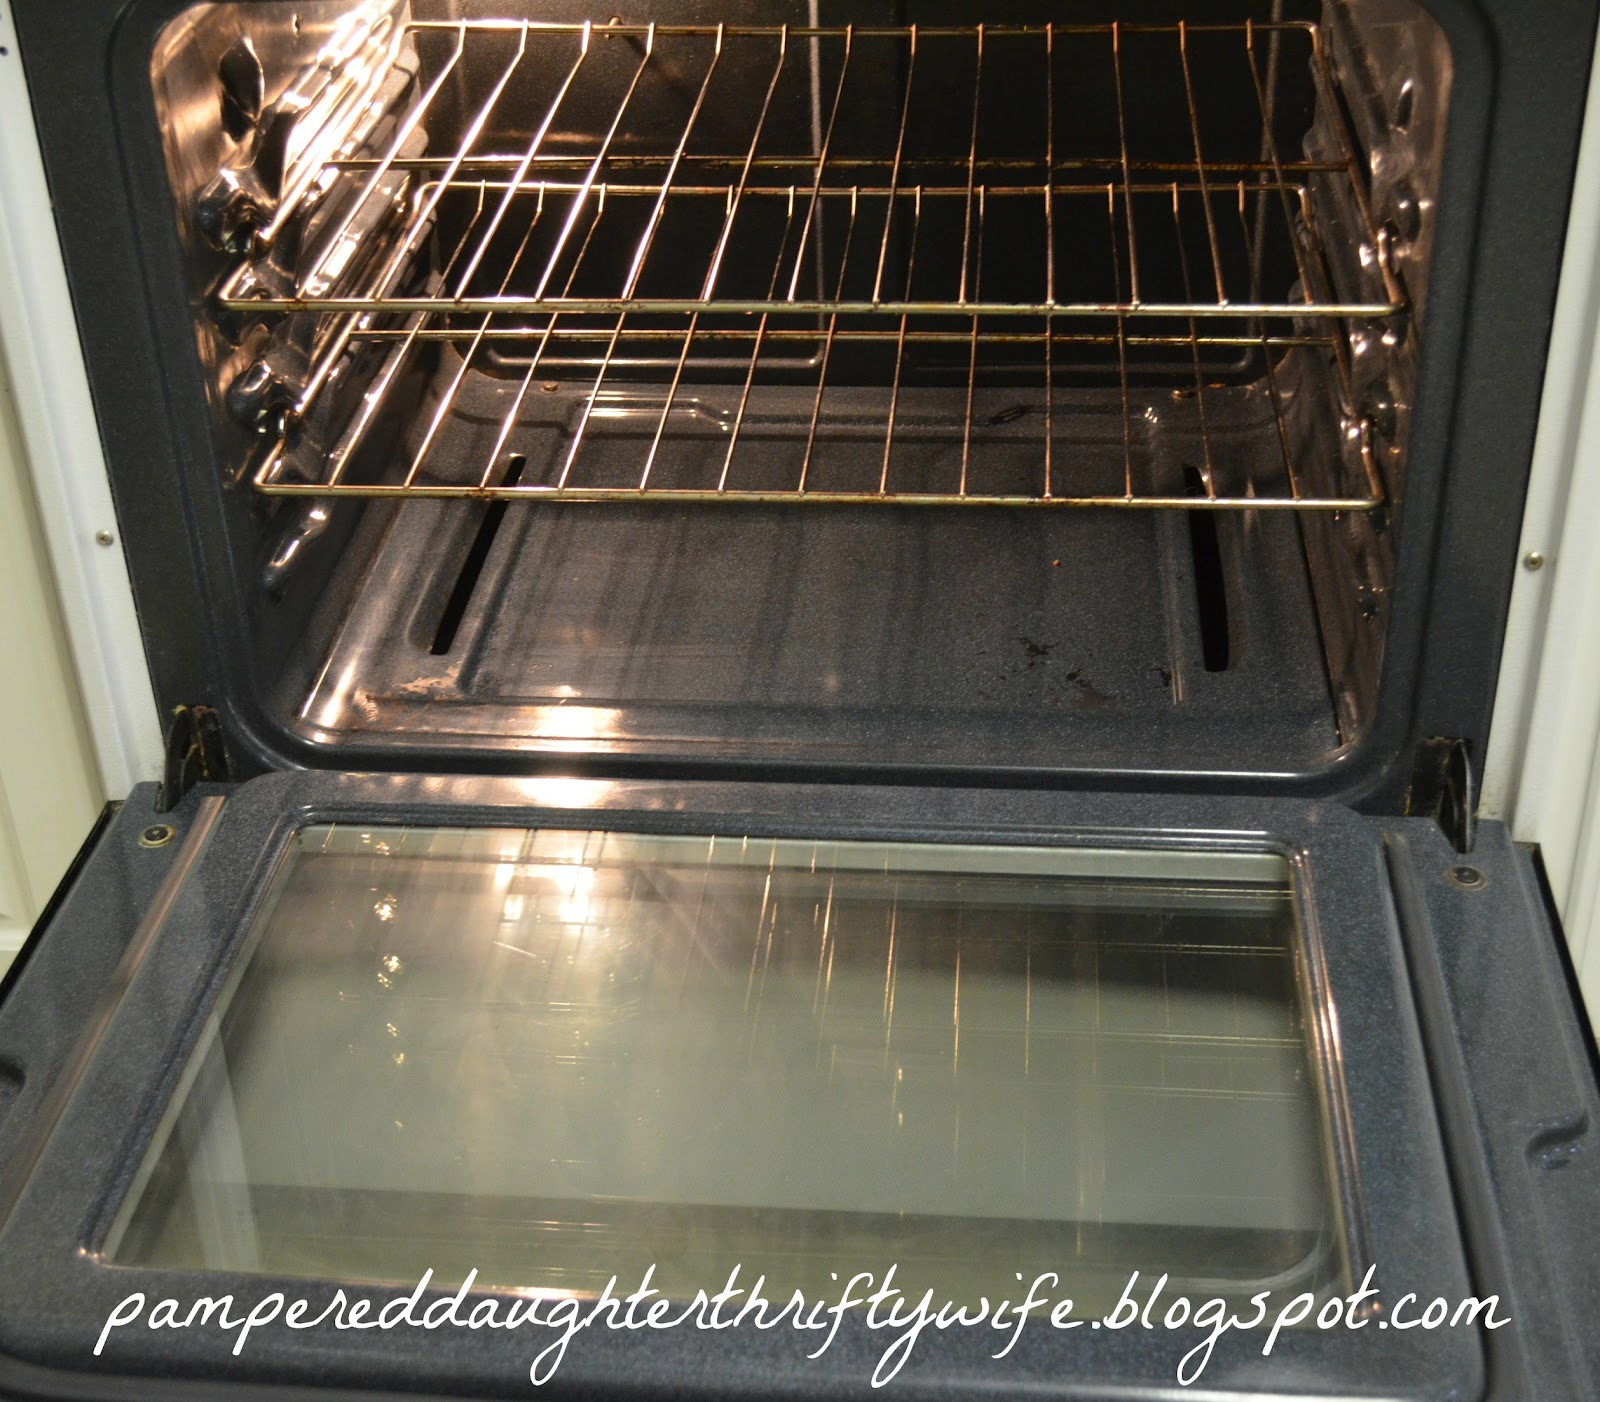 What Can I Use To Clean My Oven Naturally